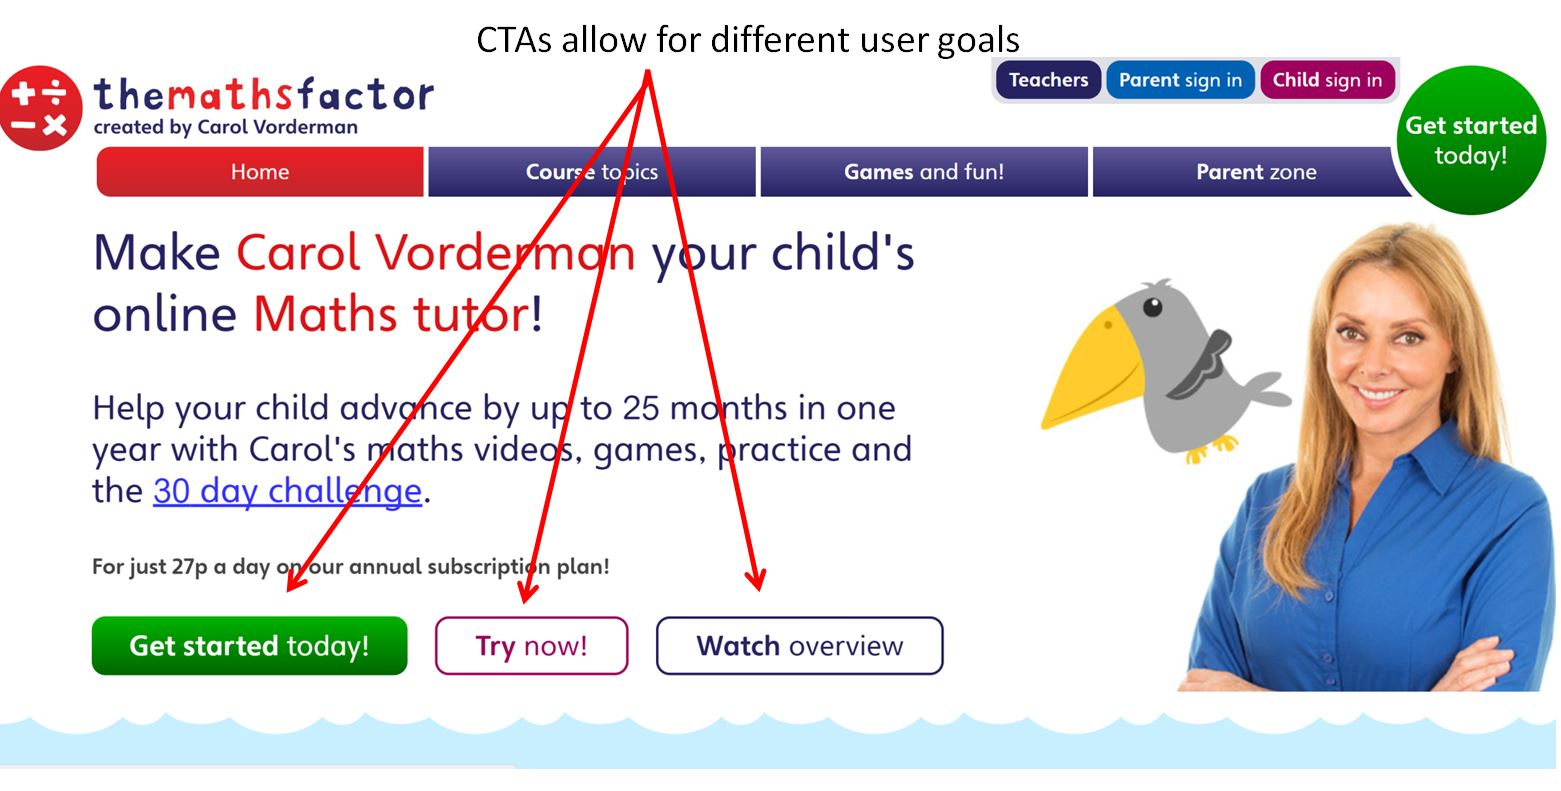 Image of Mathsfactor.com homepage with different CTAs for separate user goals